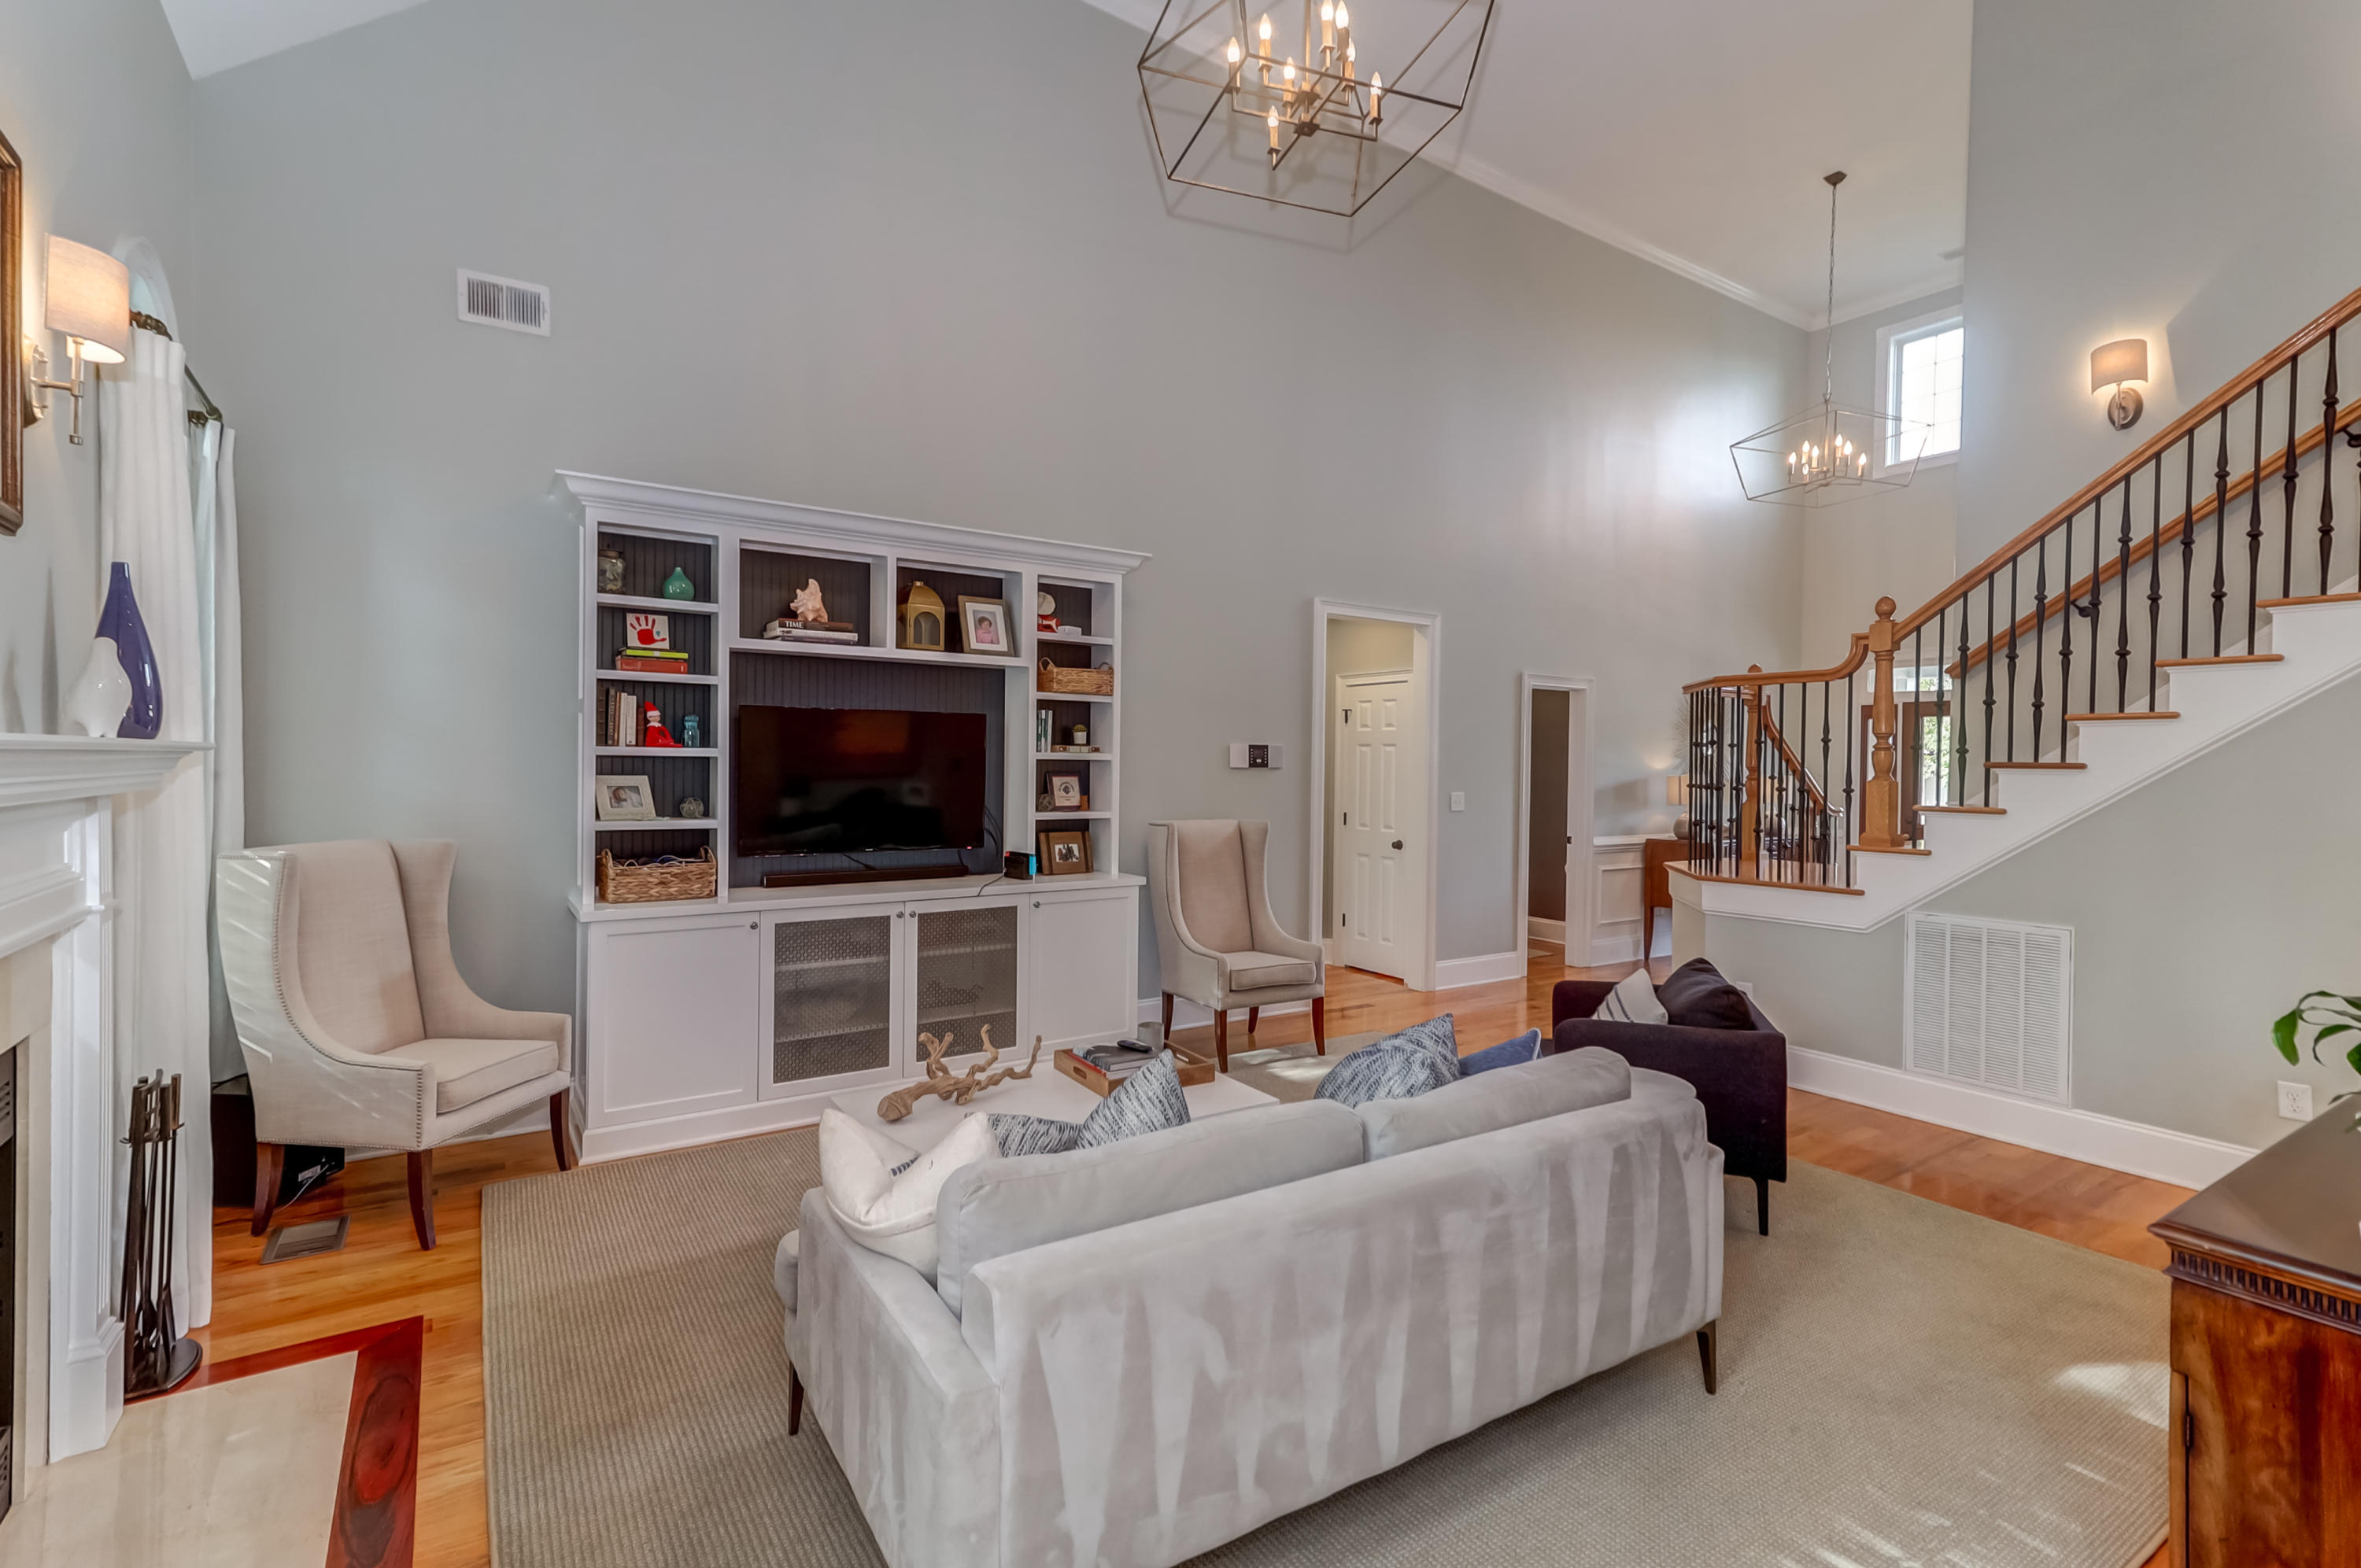 Woodward Pointe Homes For Sale - 657 White Chapel, Charleston, SC - 52